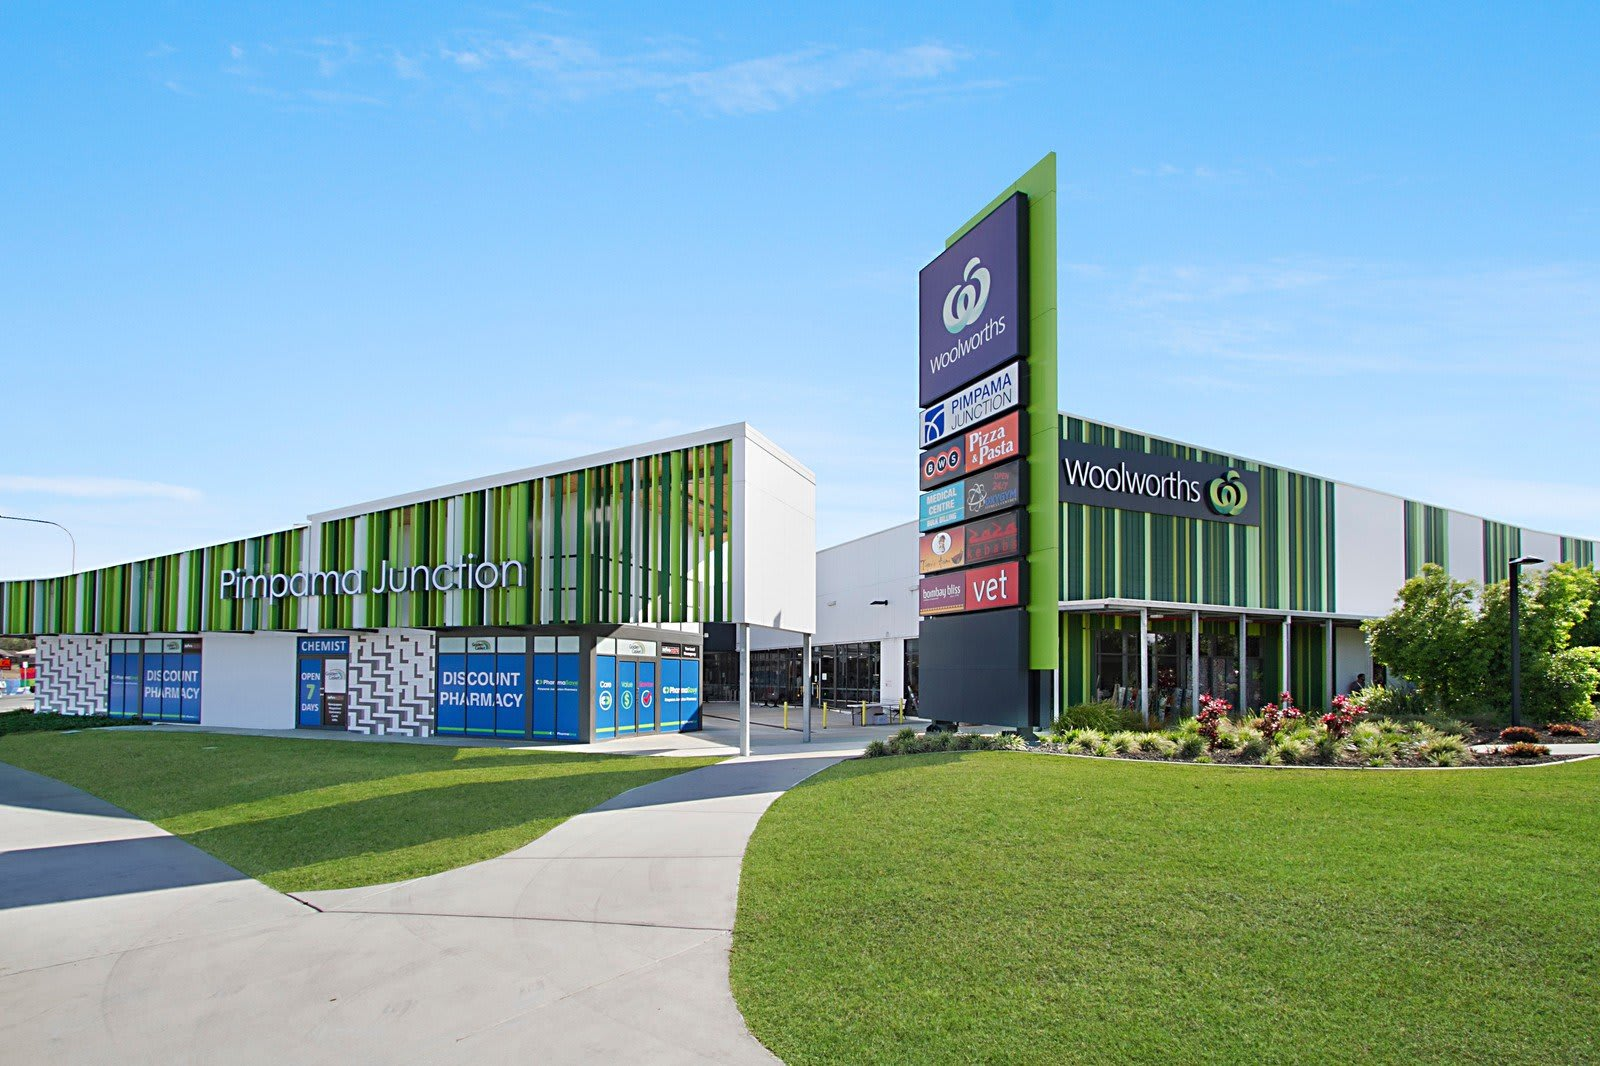 Pimpama-Junction-Shopping-Centre-image-from-Pimpama-Junction-Shopping-Centre-1